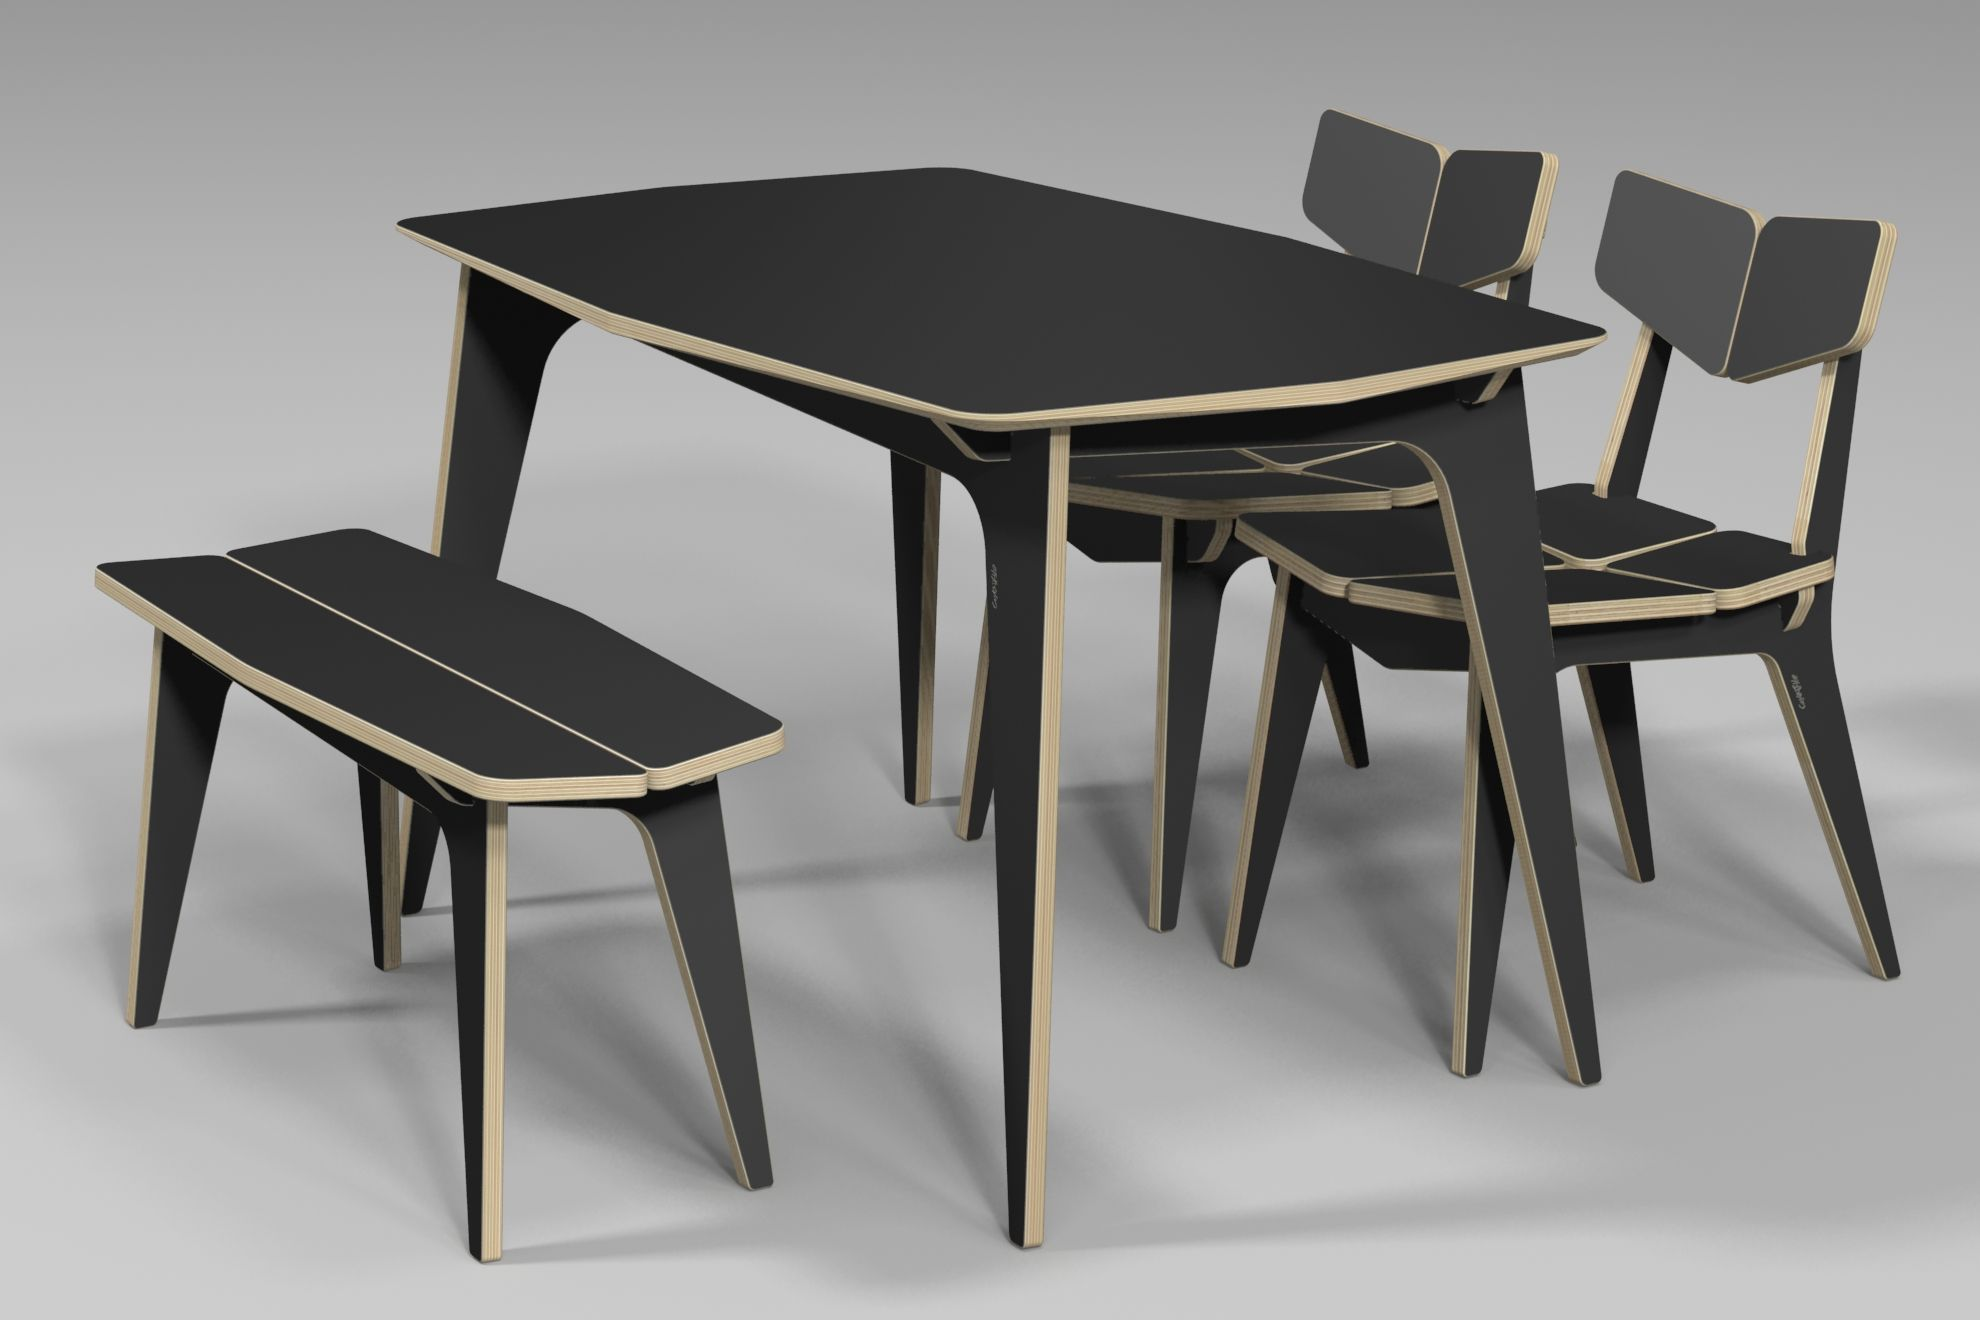 TETRA DINING TABLE / CNC ROUTER / 3D DESIGN / PLYWOOD FURNITURE /  www.